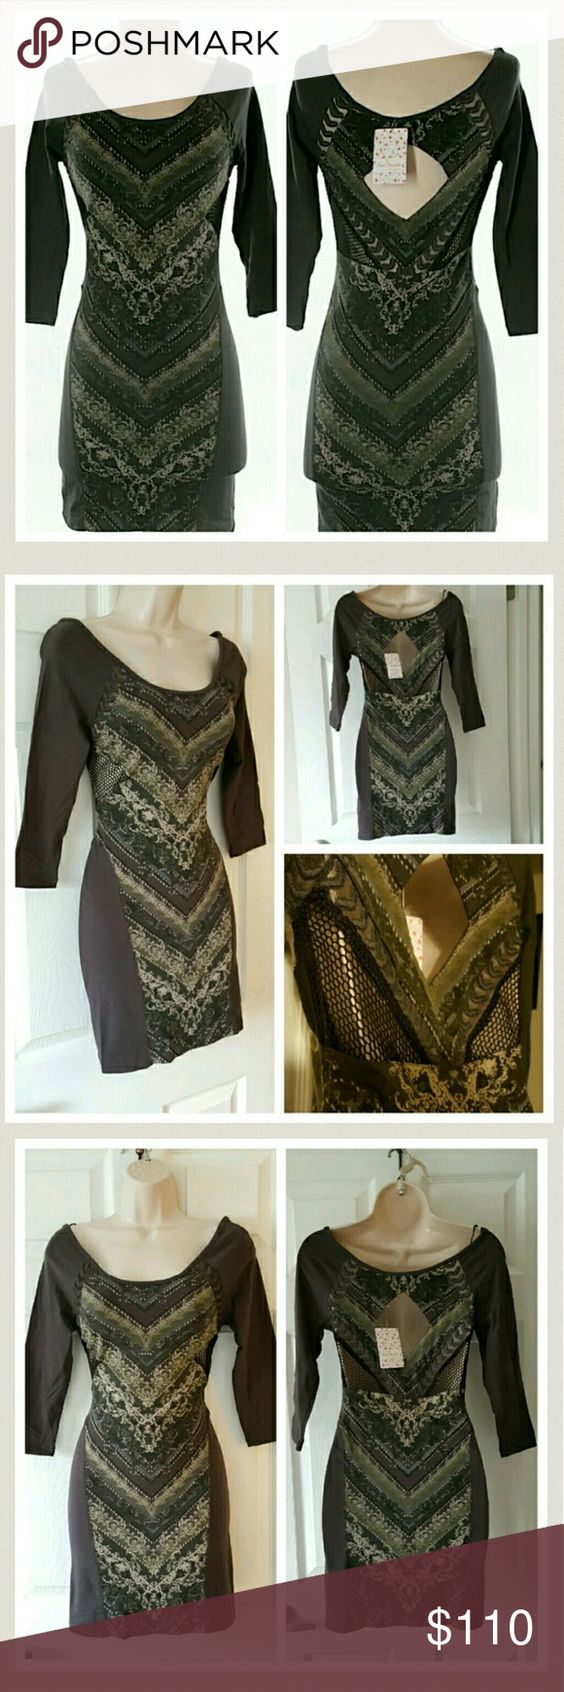 SALE ❤ Free People Charcoal Bodycon Dress XS New with tags ...